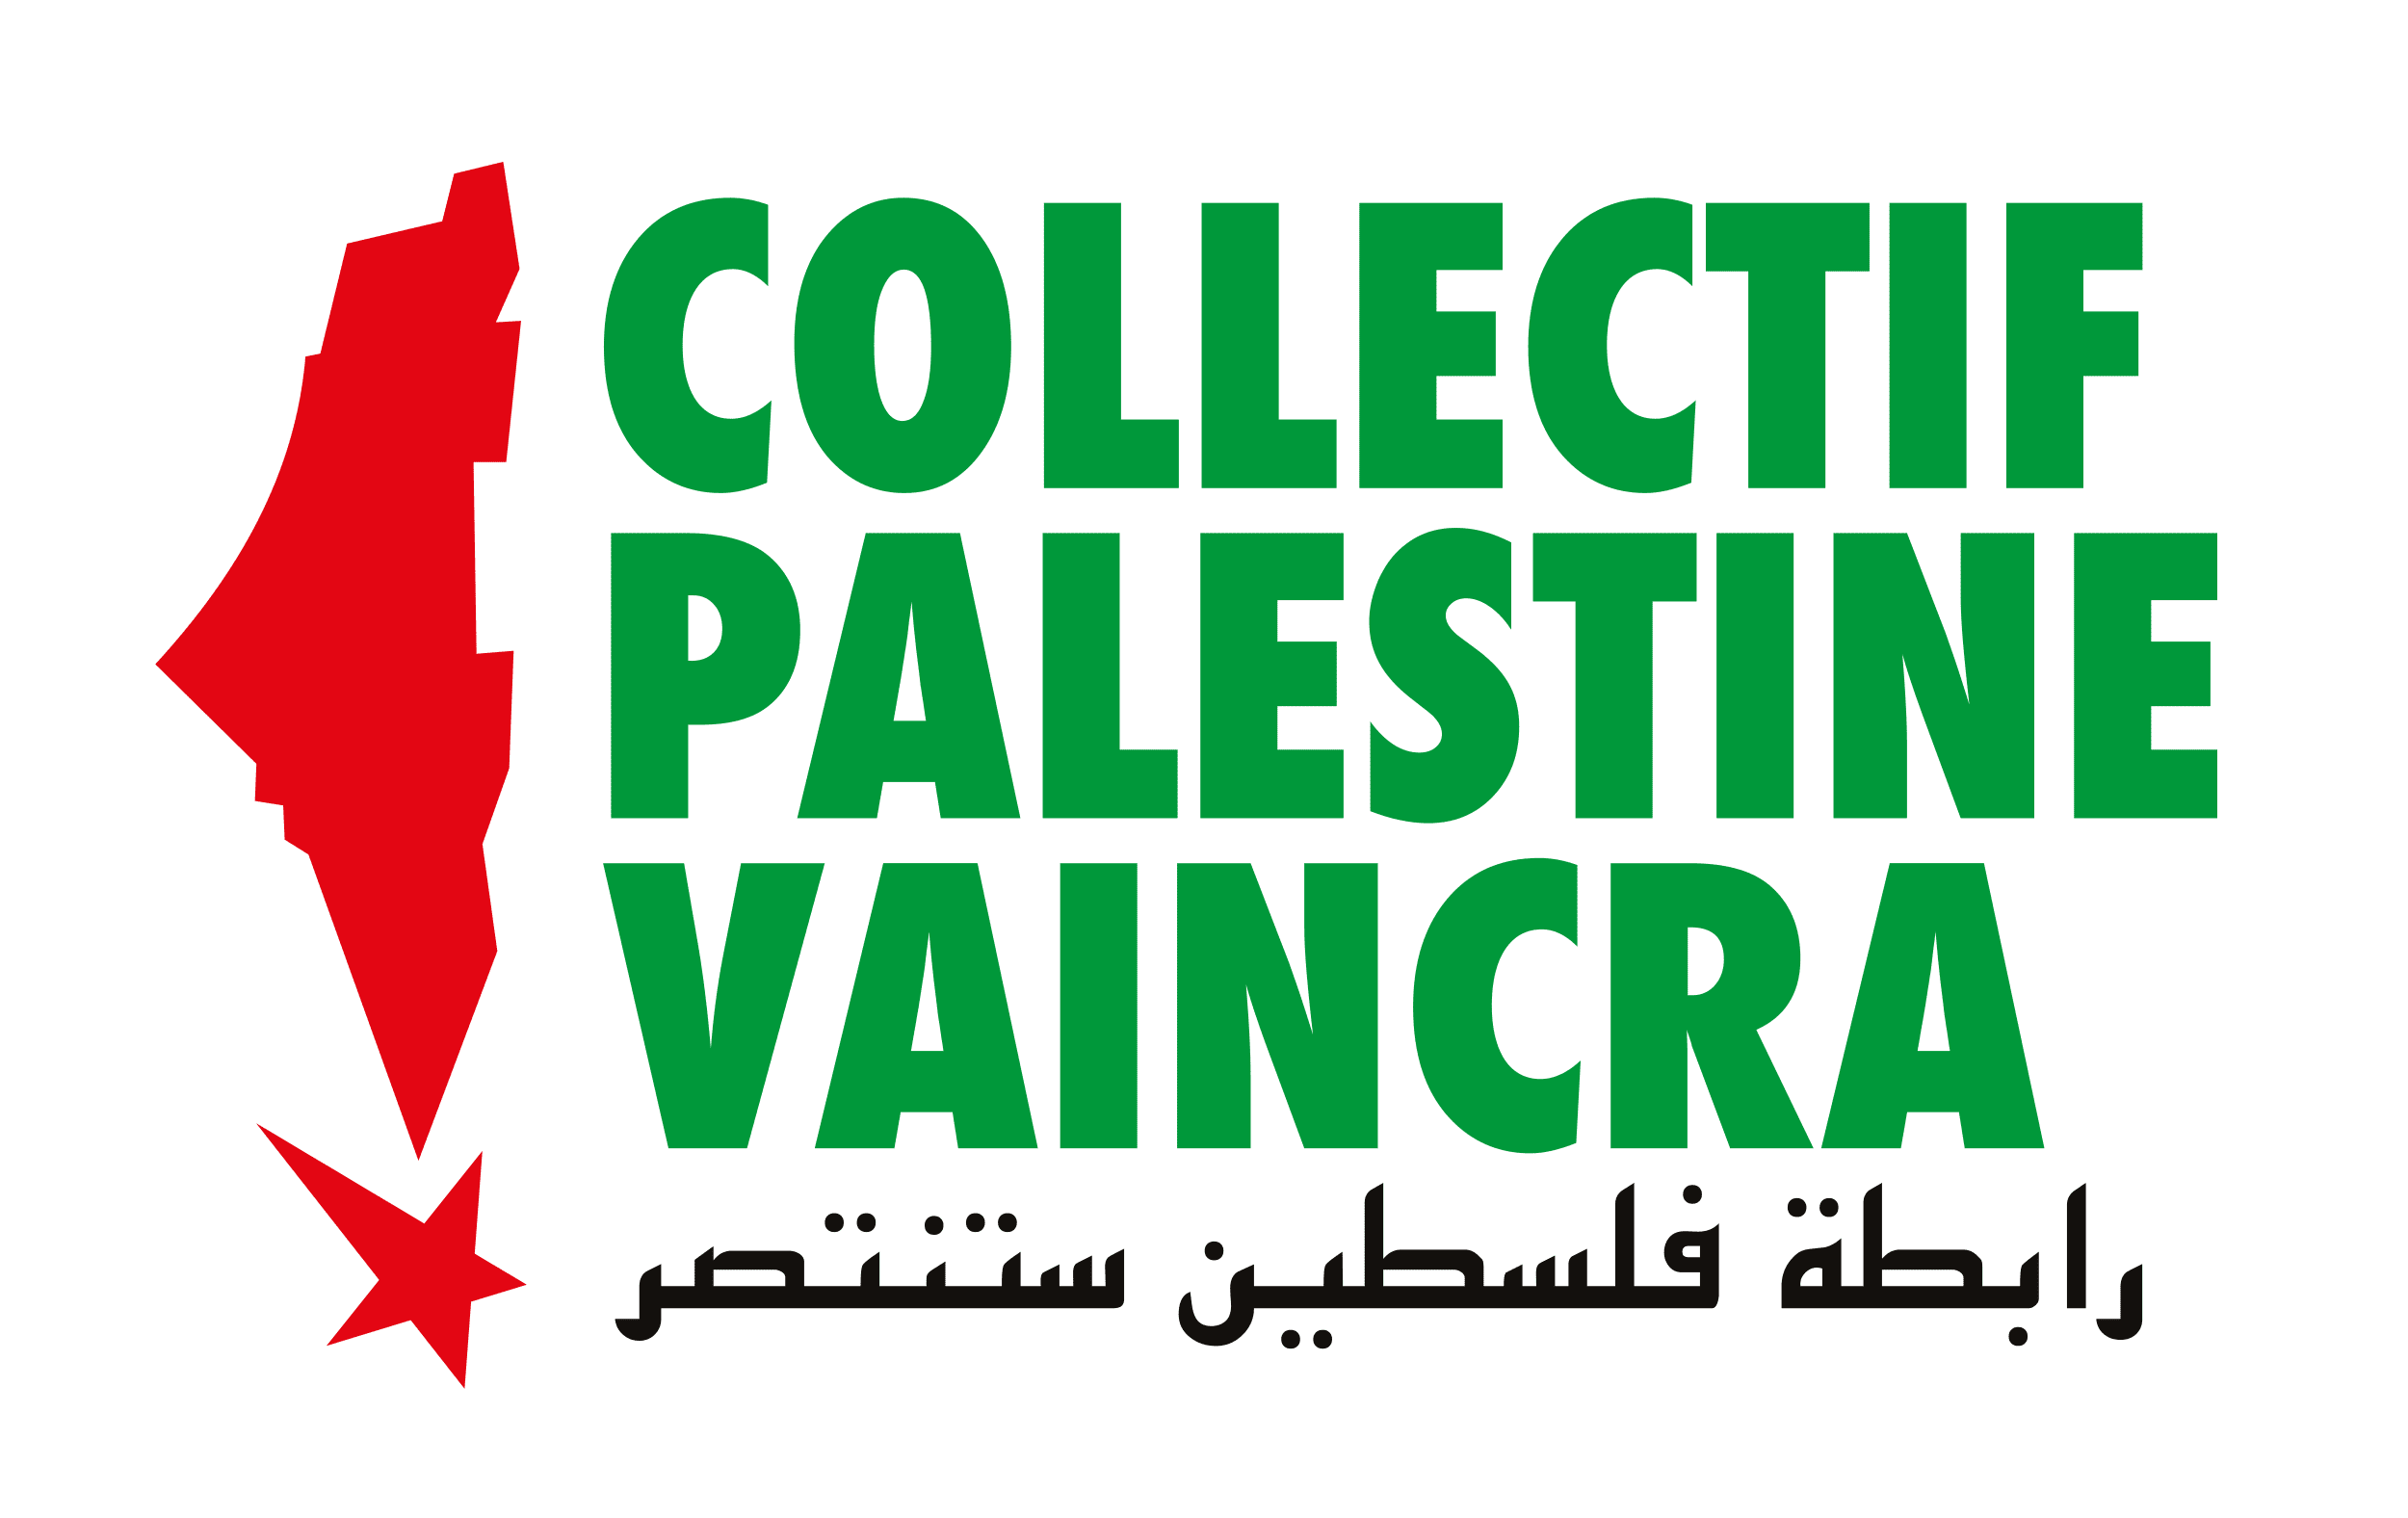 Collectif Palestine vaincra